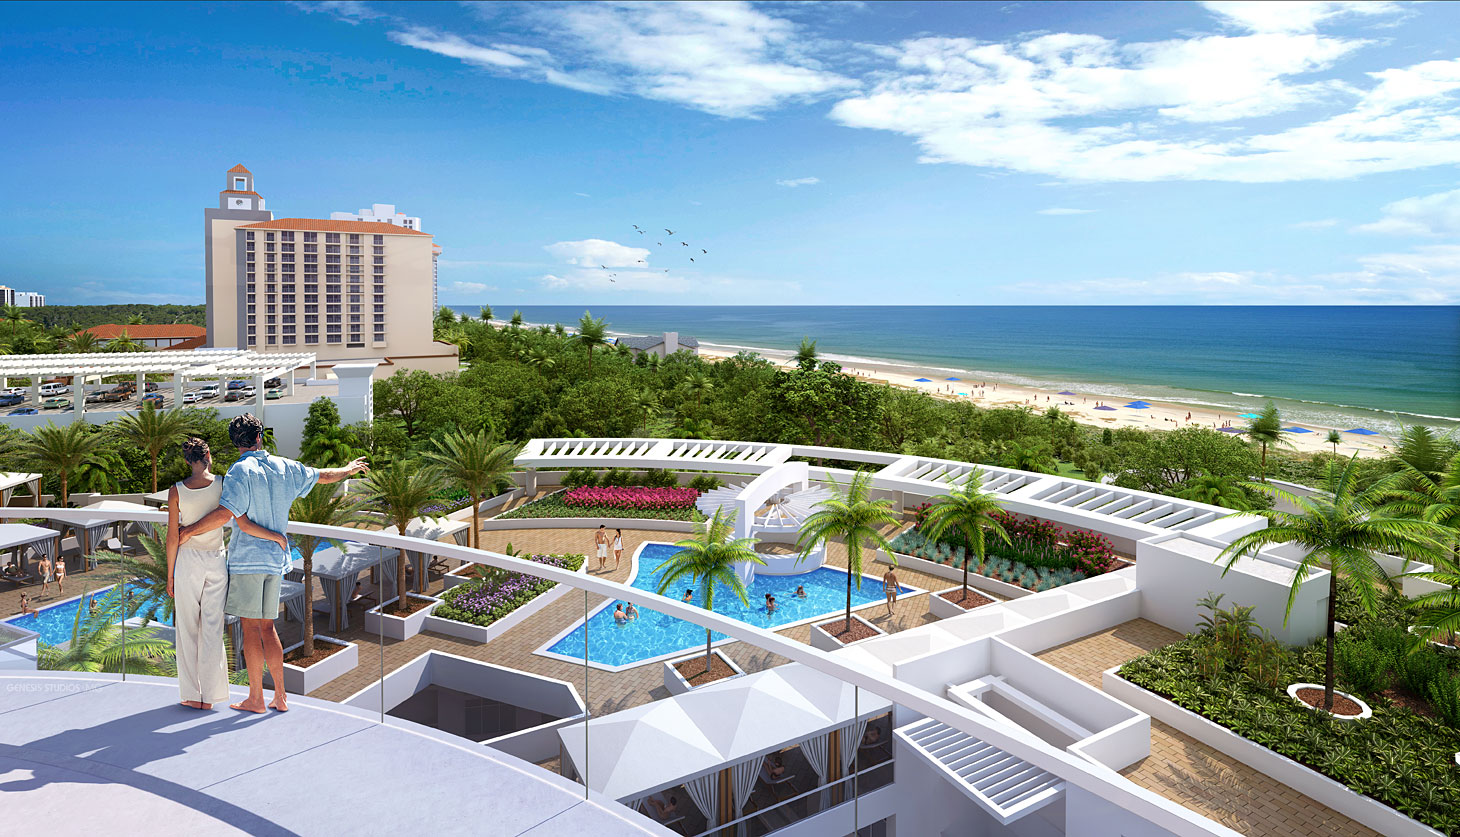 Digital Photorealistic Architectural Renderings of Vanderbilt Beach Balcony View for Stock Development